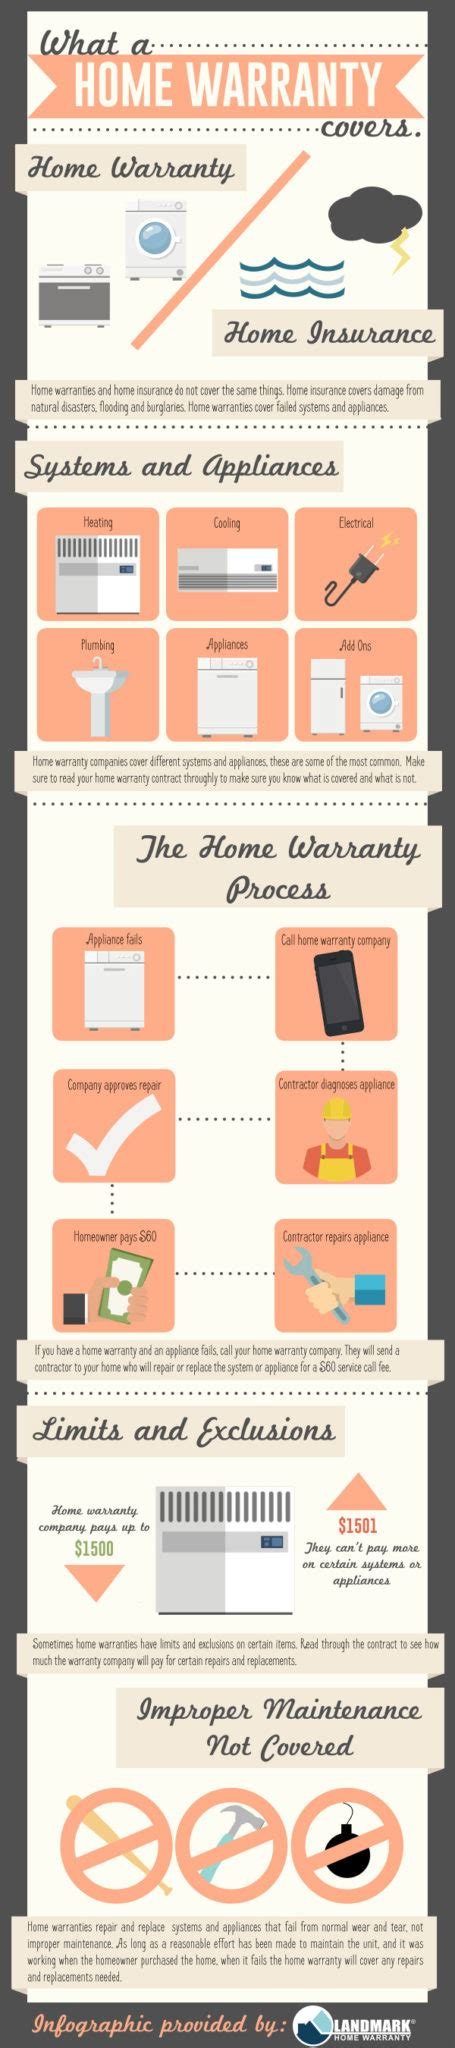 what does a home warranty cover south carolina realtors